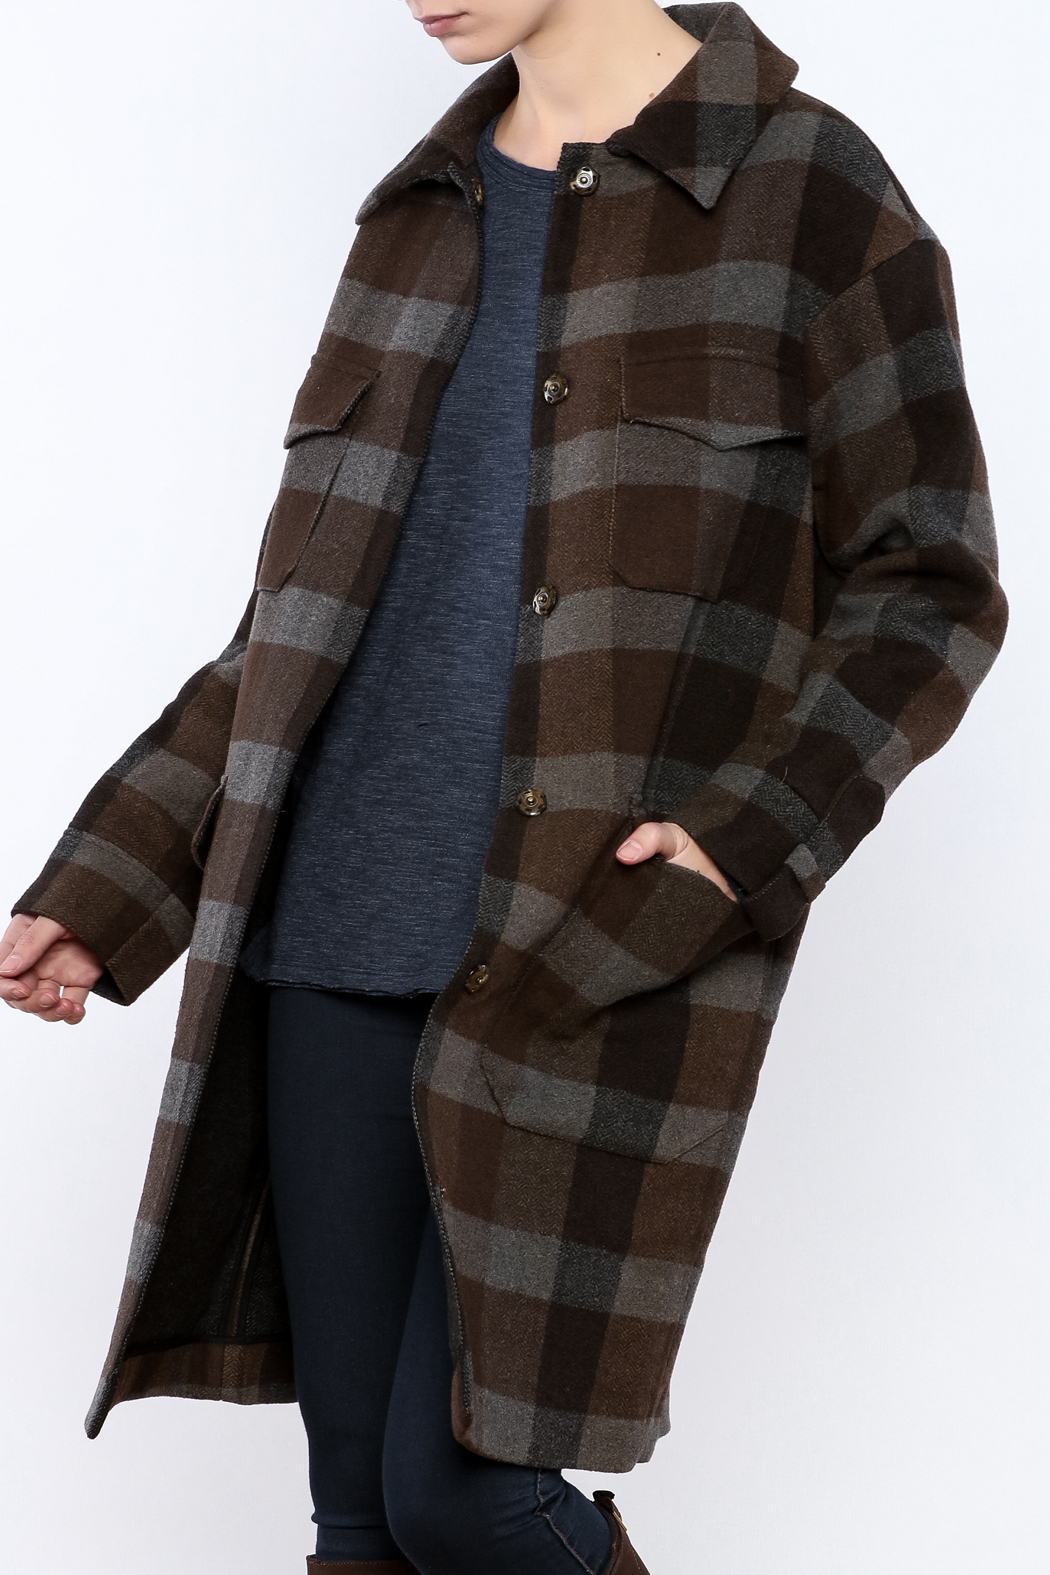 Hoss Intropia Checked Plaid Coat - Main Image